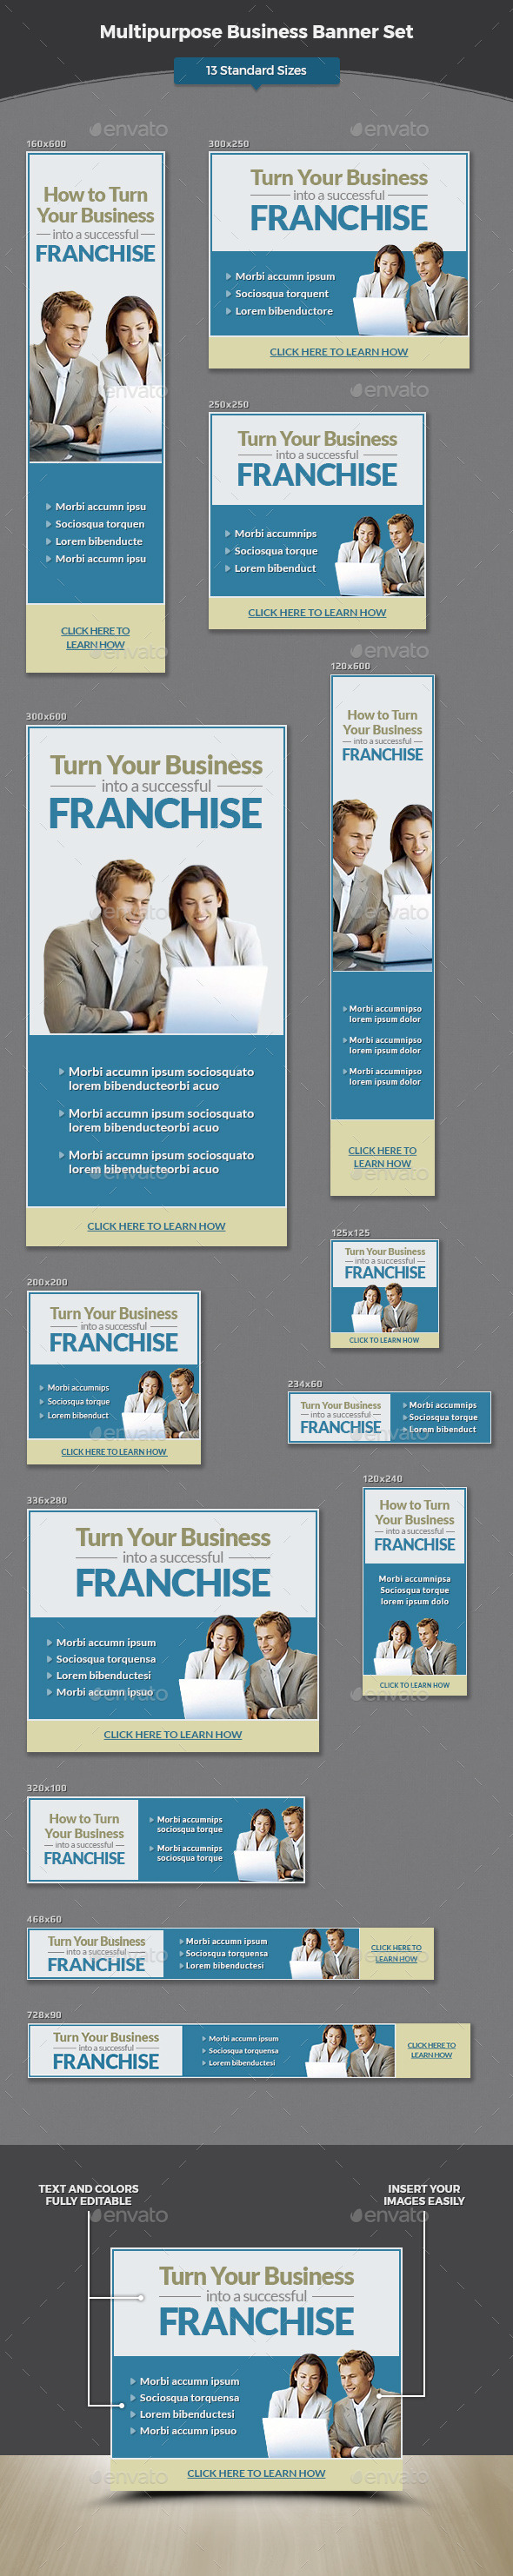 Multipurpose Business Banner Set - Banners & Ads Web Elements